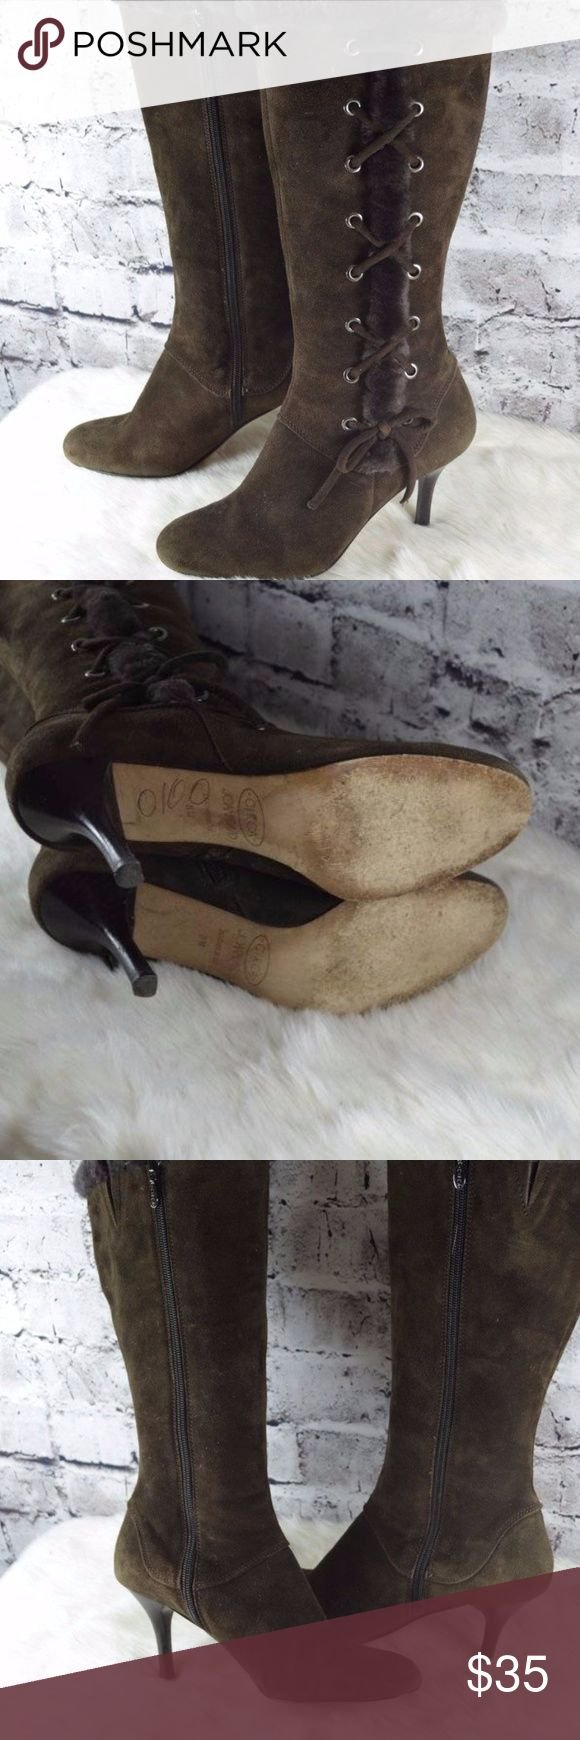 Joan & David Millie brown suede fur boots Joan & David Millie brown suede fur lace up stiletto heels boots 8M height:16 circumference around top:15.5 heel:3.5 Condition: pre owned some minor wear. Joan & David Shoes Heeled Boots